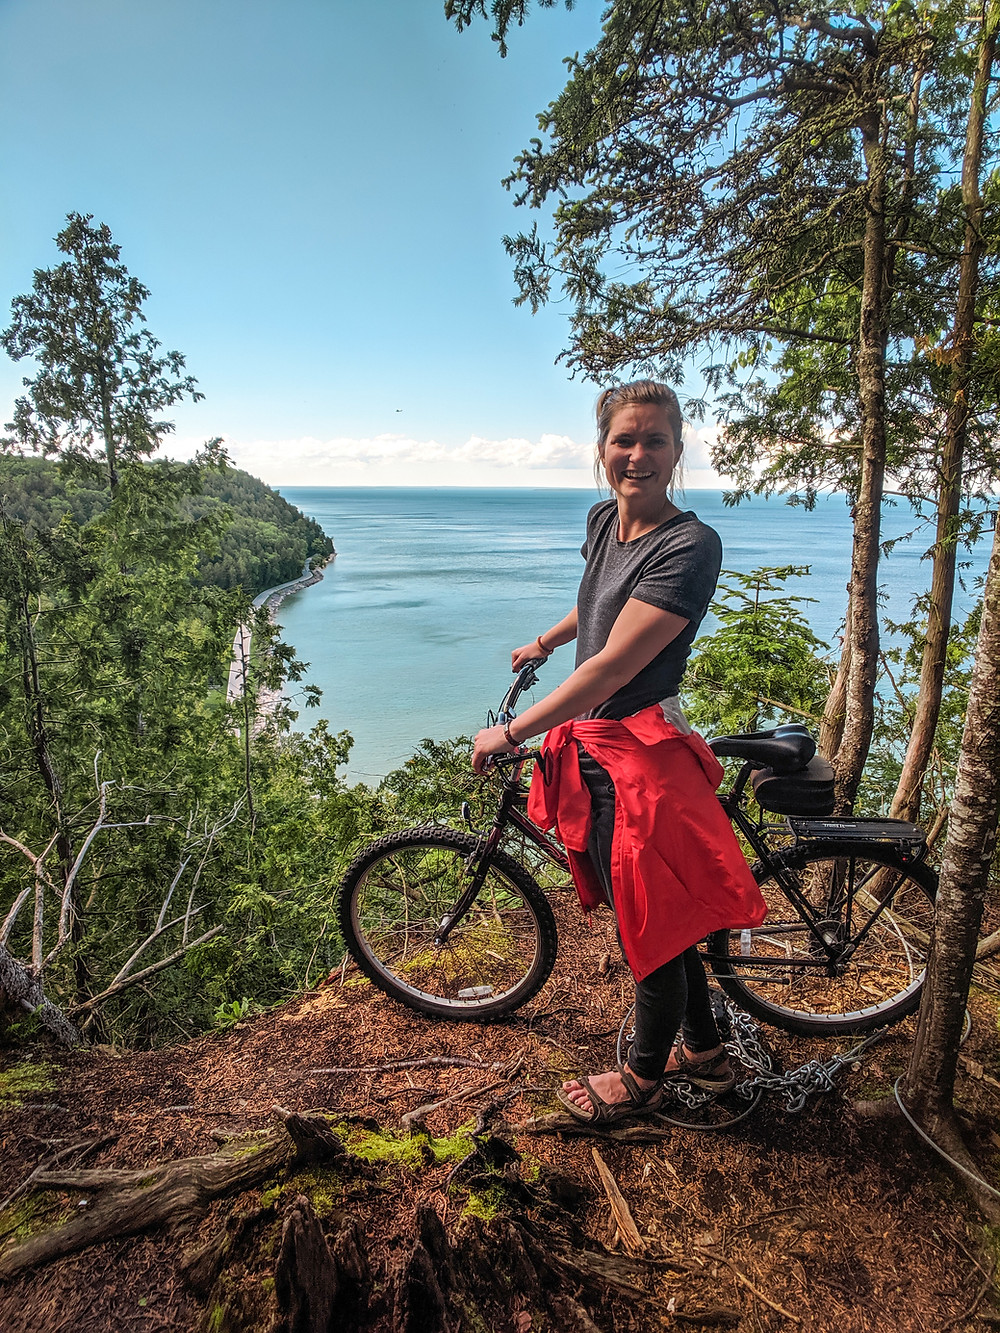 Steph from the Each Day Slow blog riding bicycle on Mackinac Island.